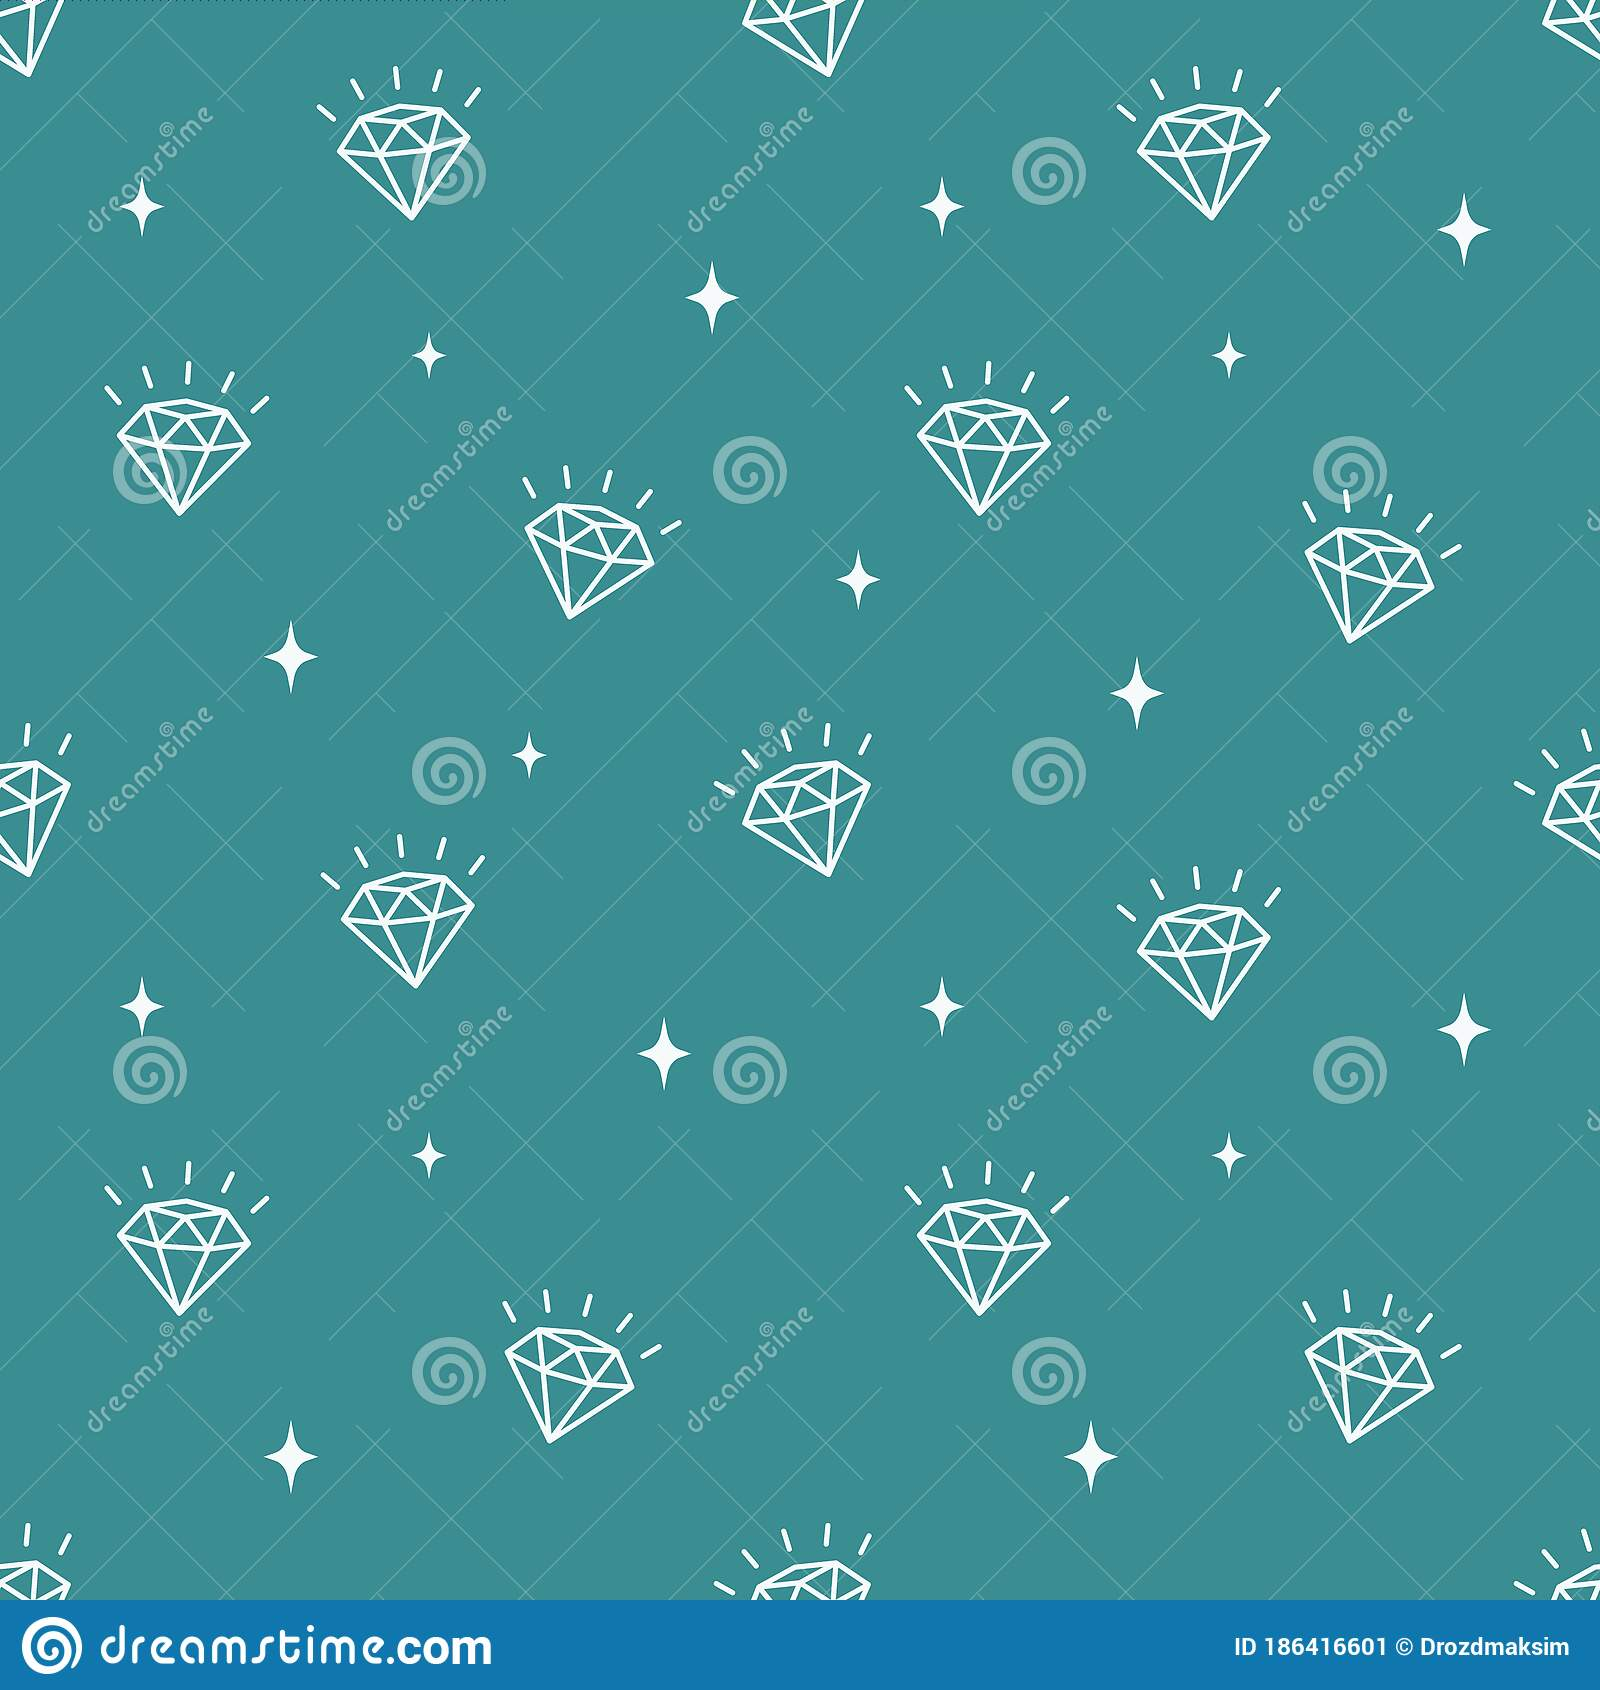 Vector Pattern With Diamonds. Seamless Pattern Can Be Used For Wallpaper, Pattern Fills, Surface ...